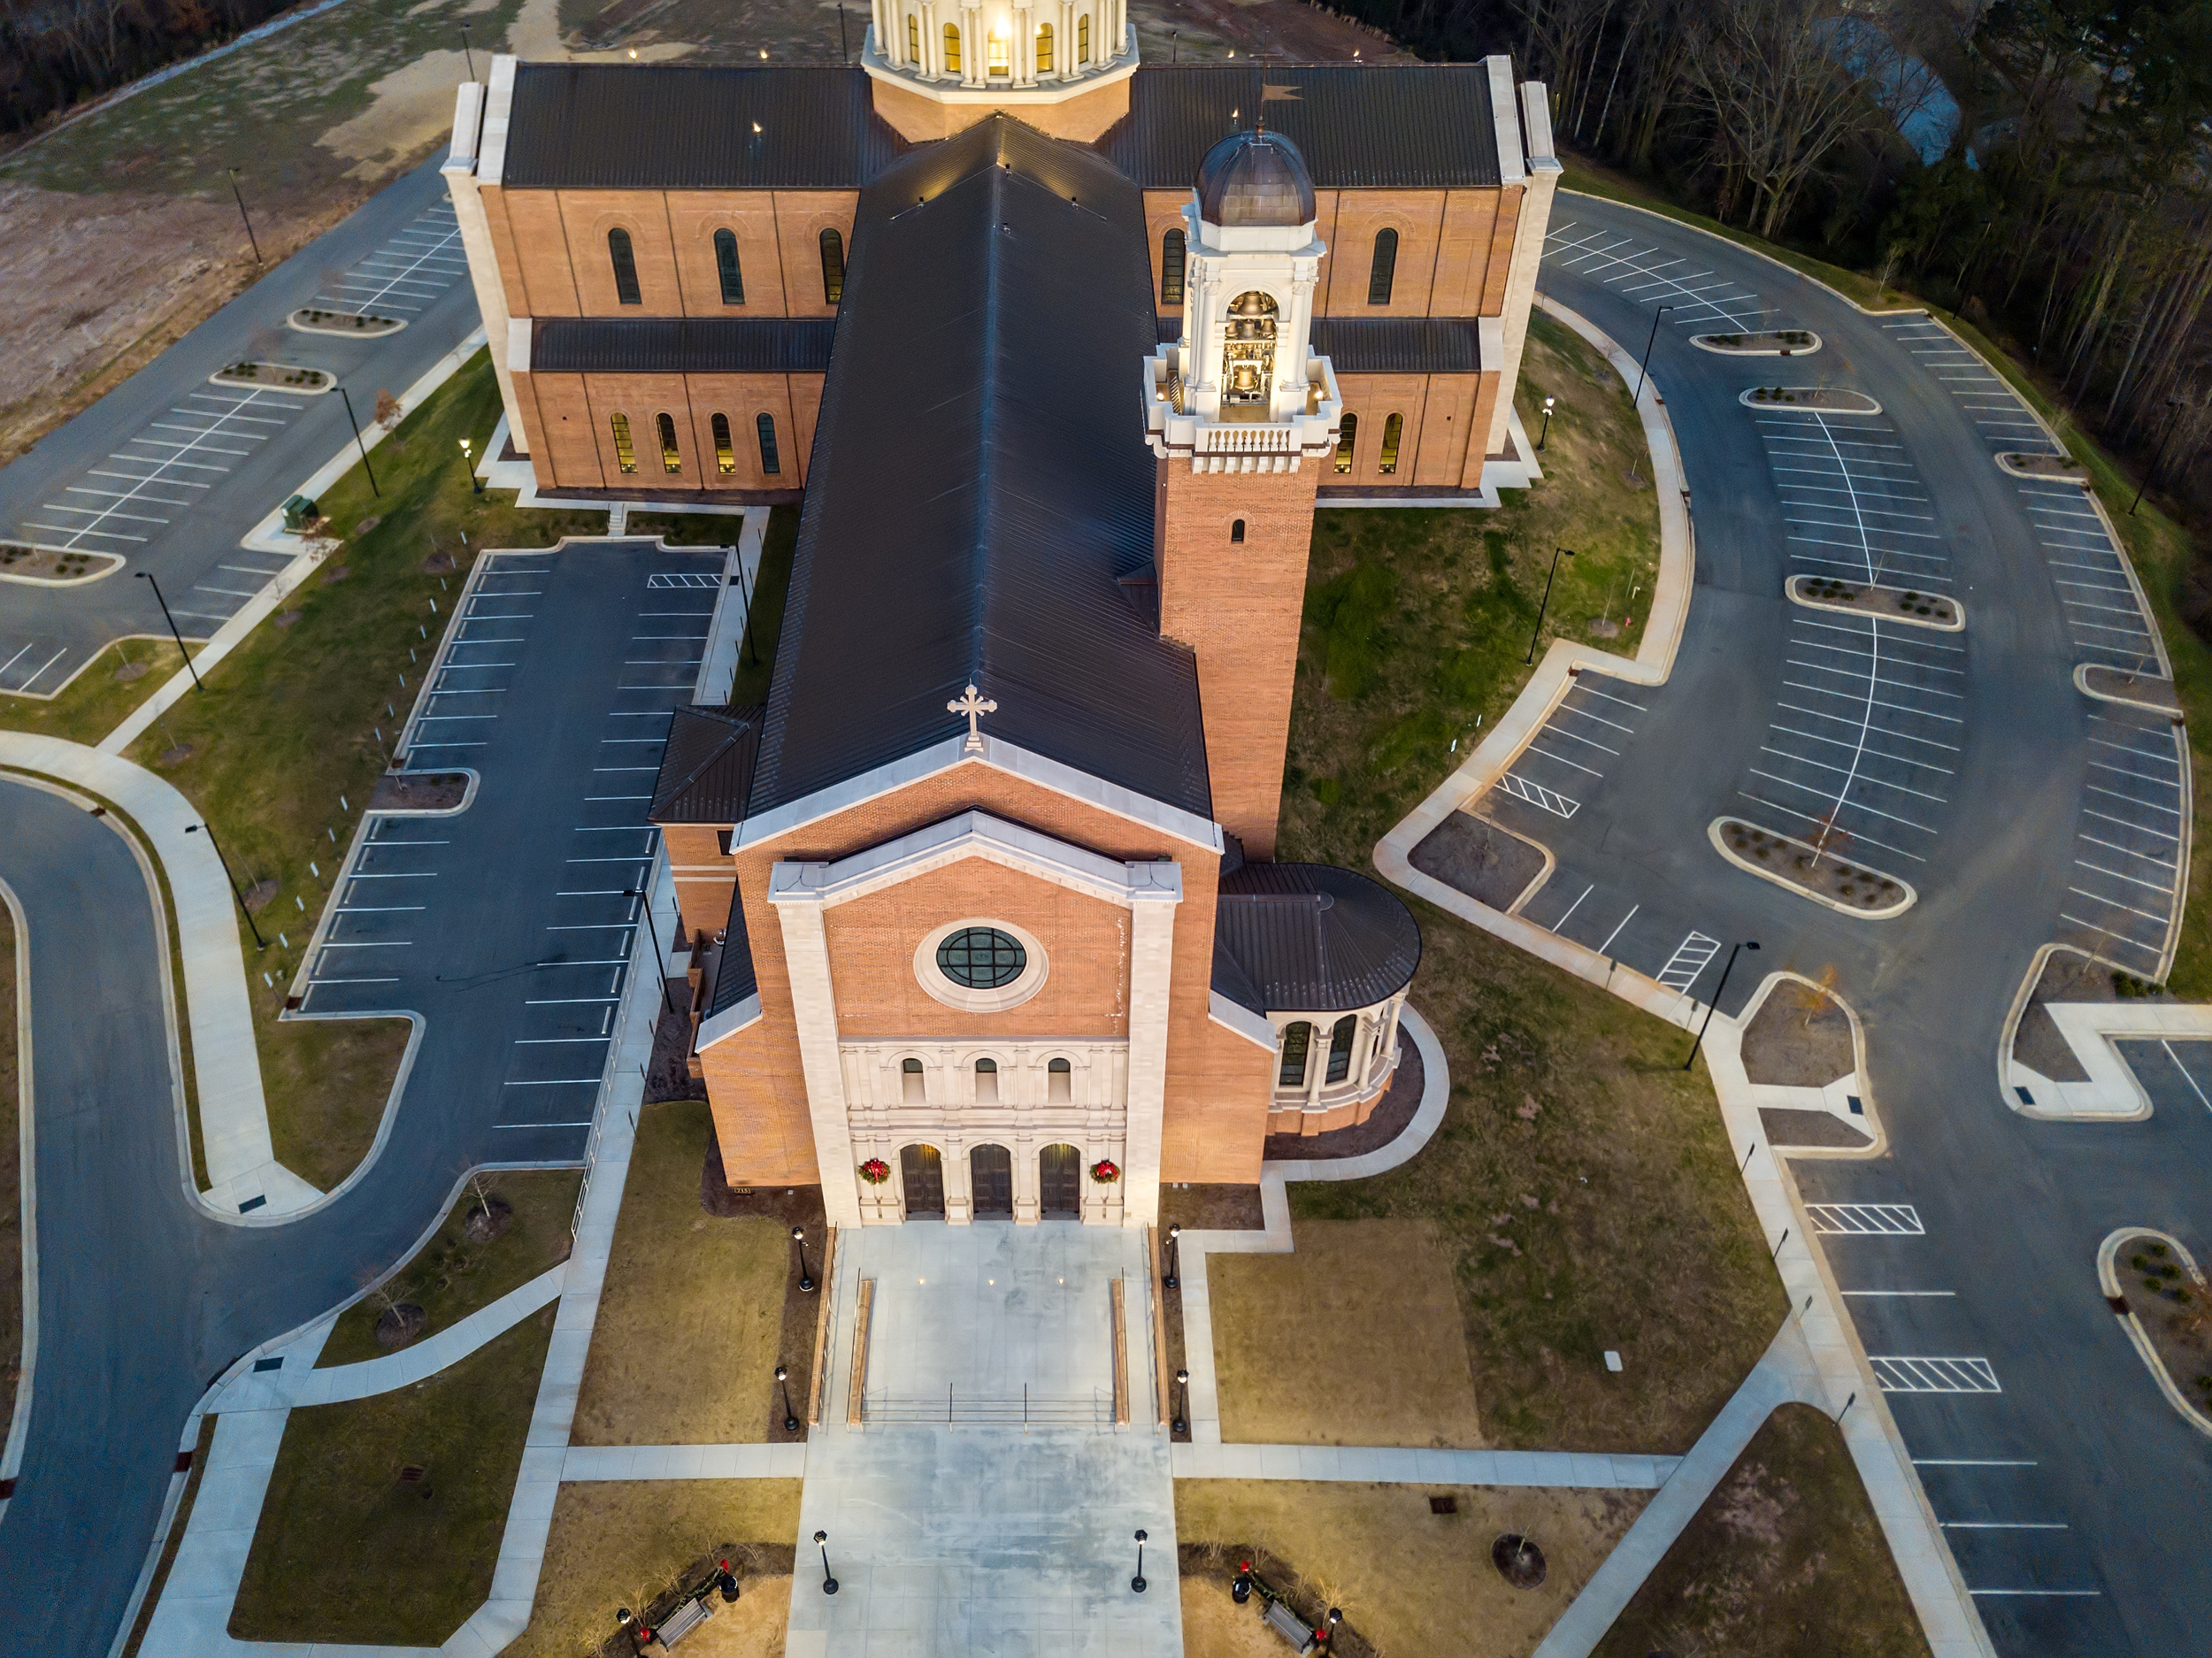 2018_12_25_DJI_Holy_Name_of_Jesus_026-HDR-2_01.jpg